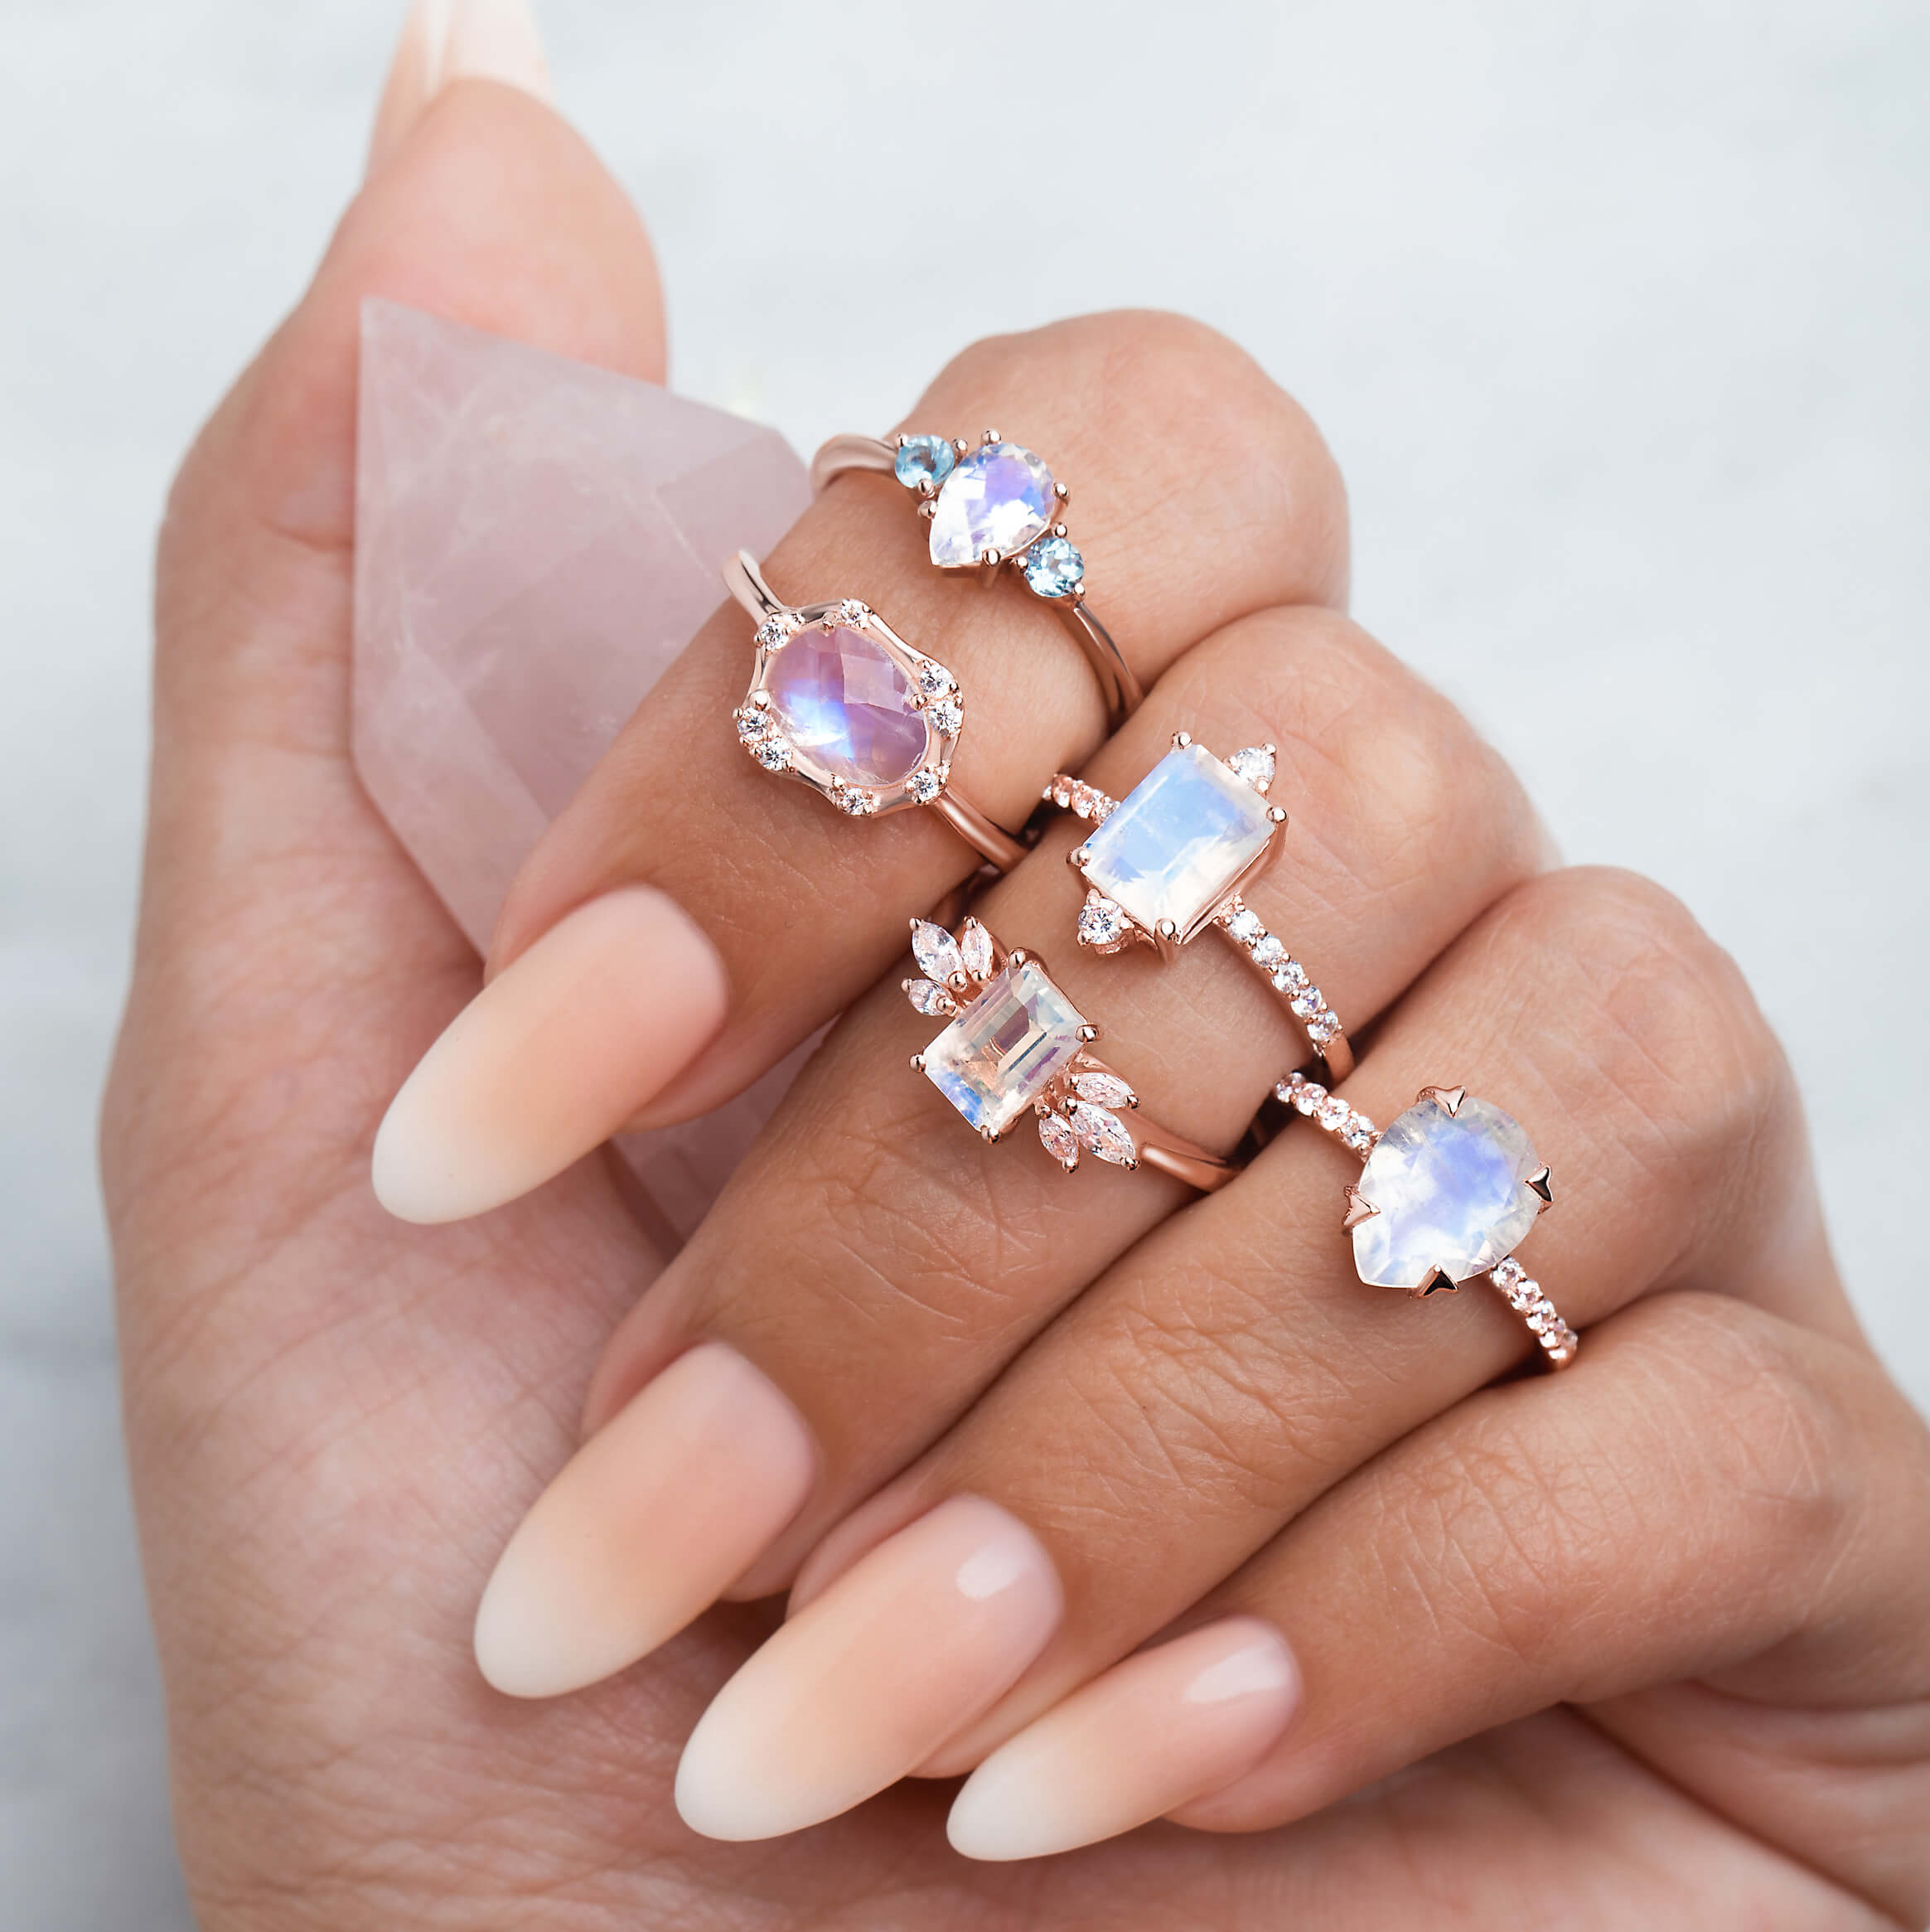 A hand is holding a raw Rose Quartz crystal and is wearing five different gemstone rings.